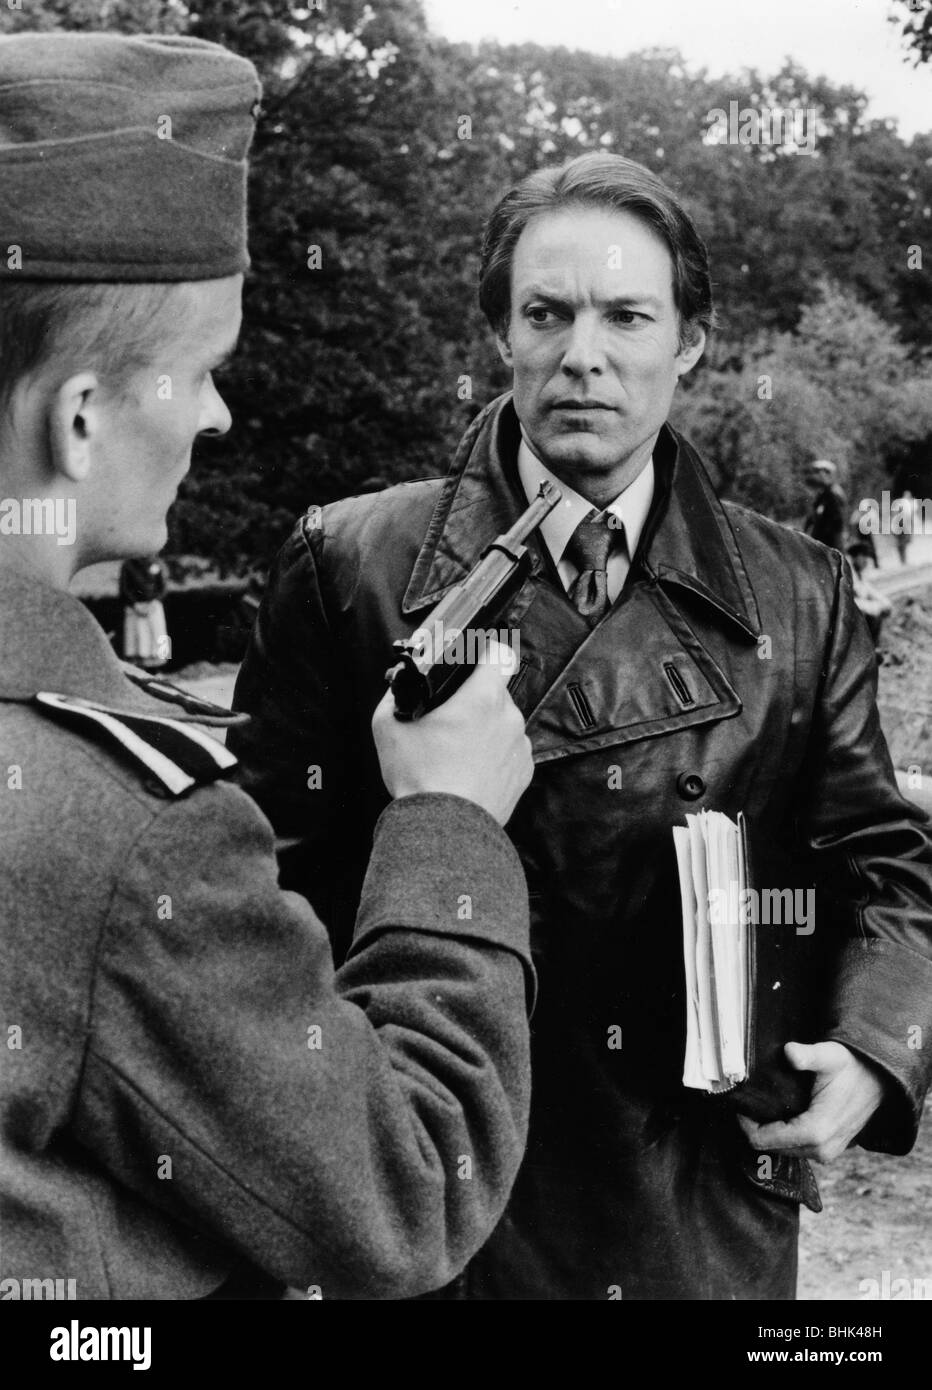 Richard Chamberlain (1935- ), American actor, 1985. Stock Photo